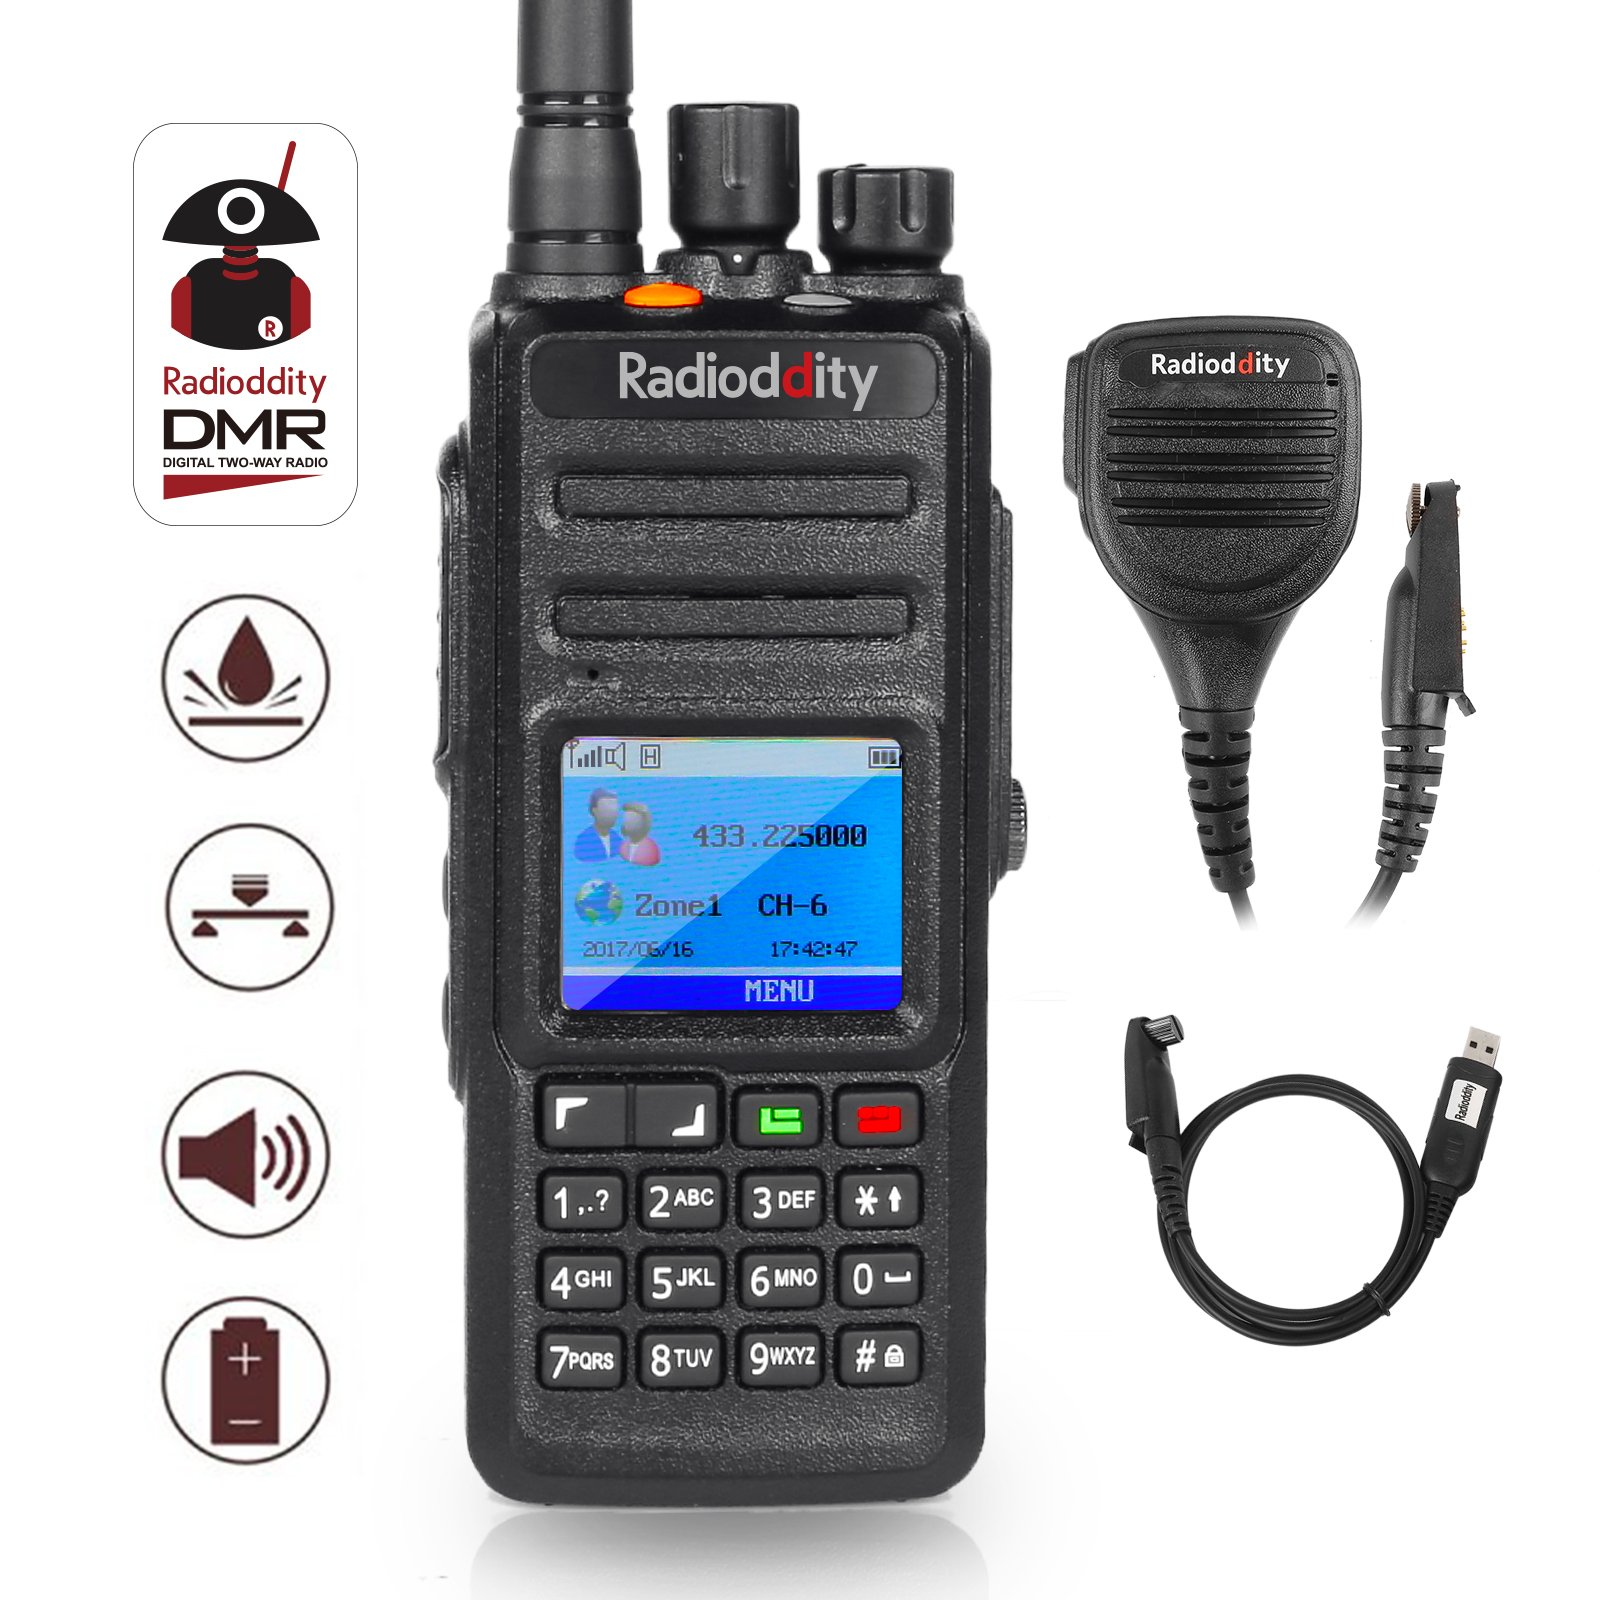 Radioddity GD-55 Plus 10W IP67 Waterproof UHF 400-470MHz 256CH 2800mAh DMR Two Way Radio Ham Radio Compatible with Mototrbo Dual Time Slot, with Free Programming Cable+ 2 Antennas + Remote Speaker